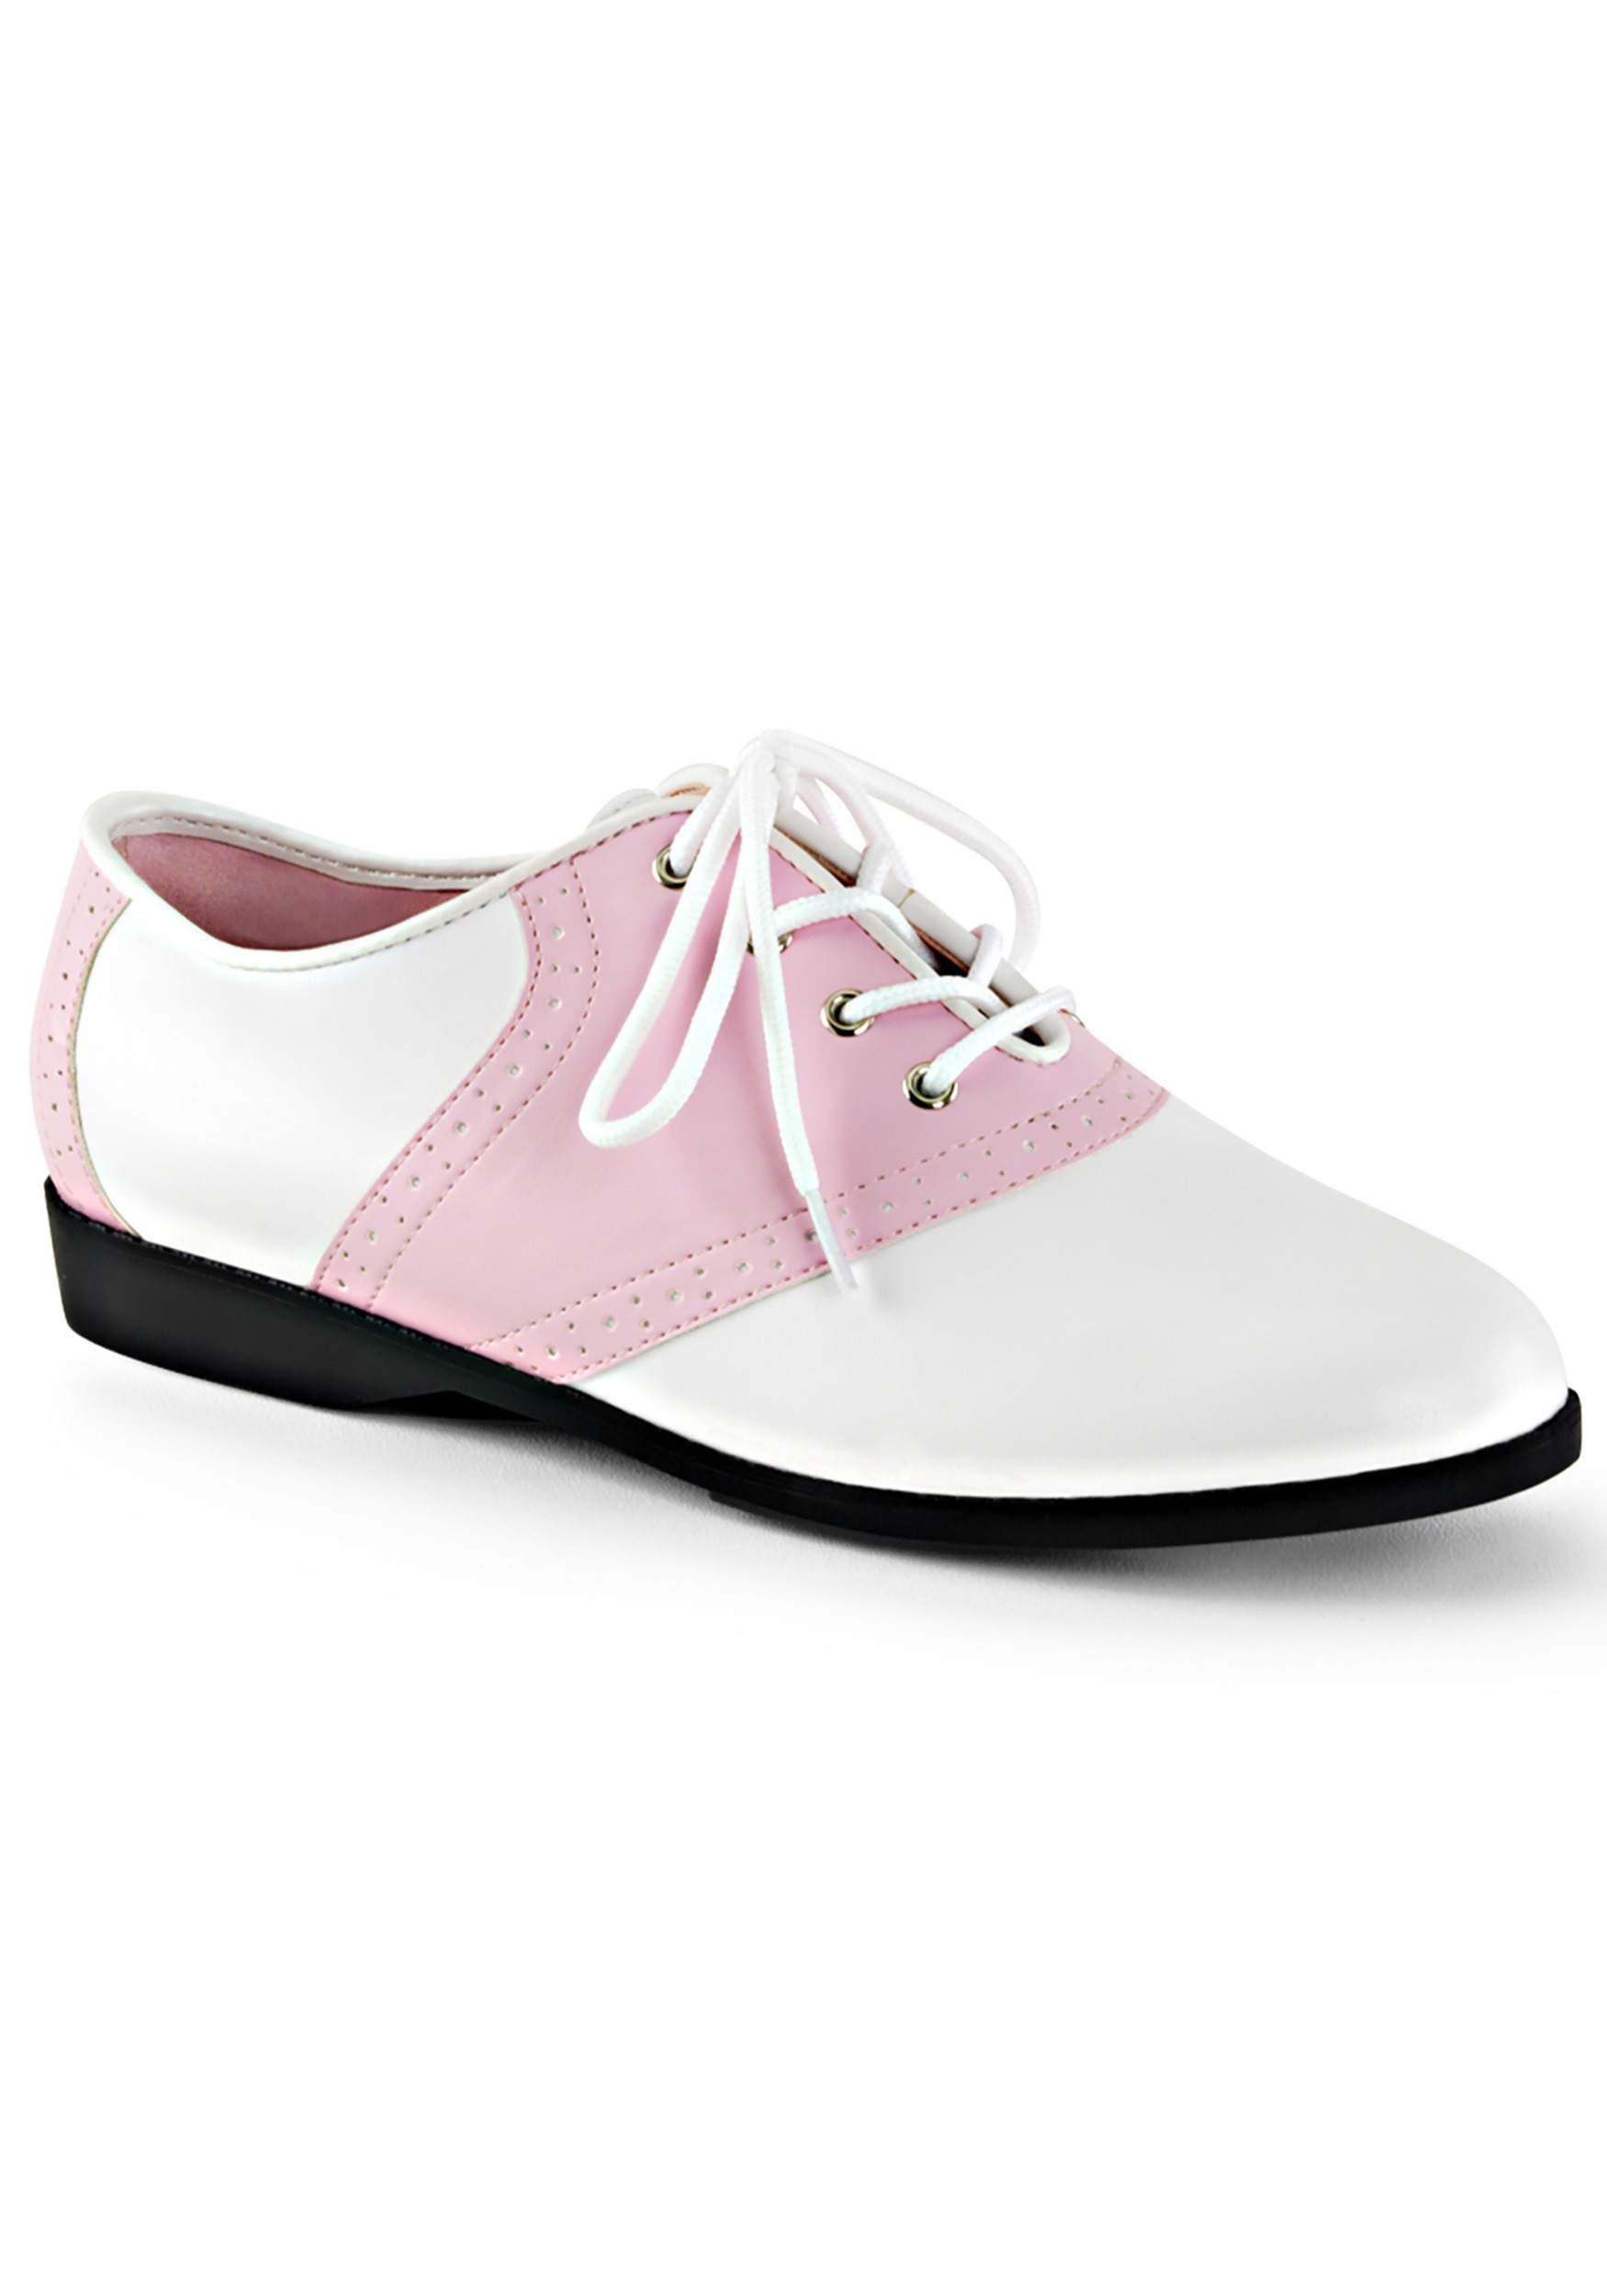 1950s Girl Shoes Womens Pink Saddle Shoes